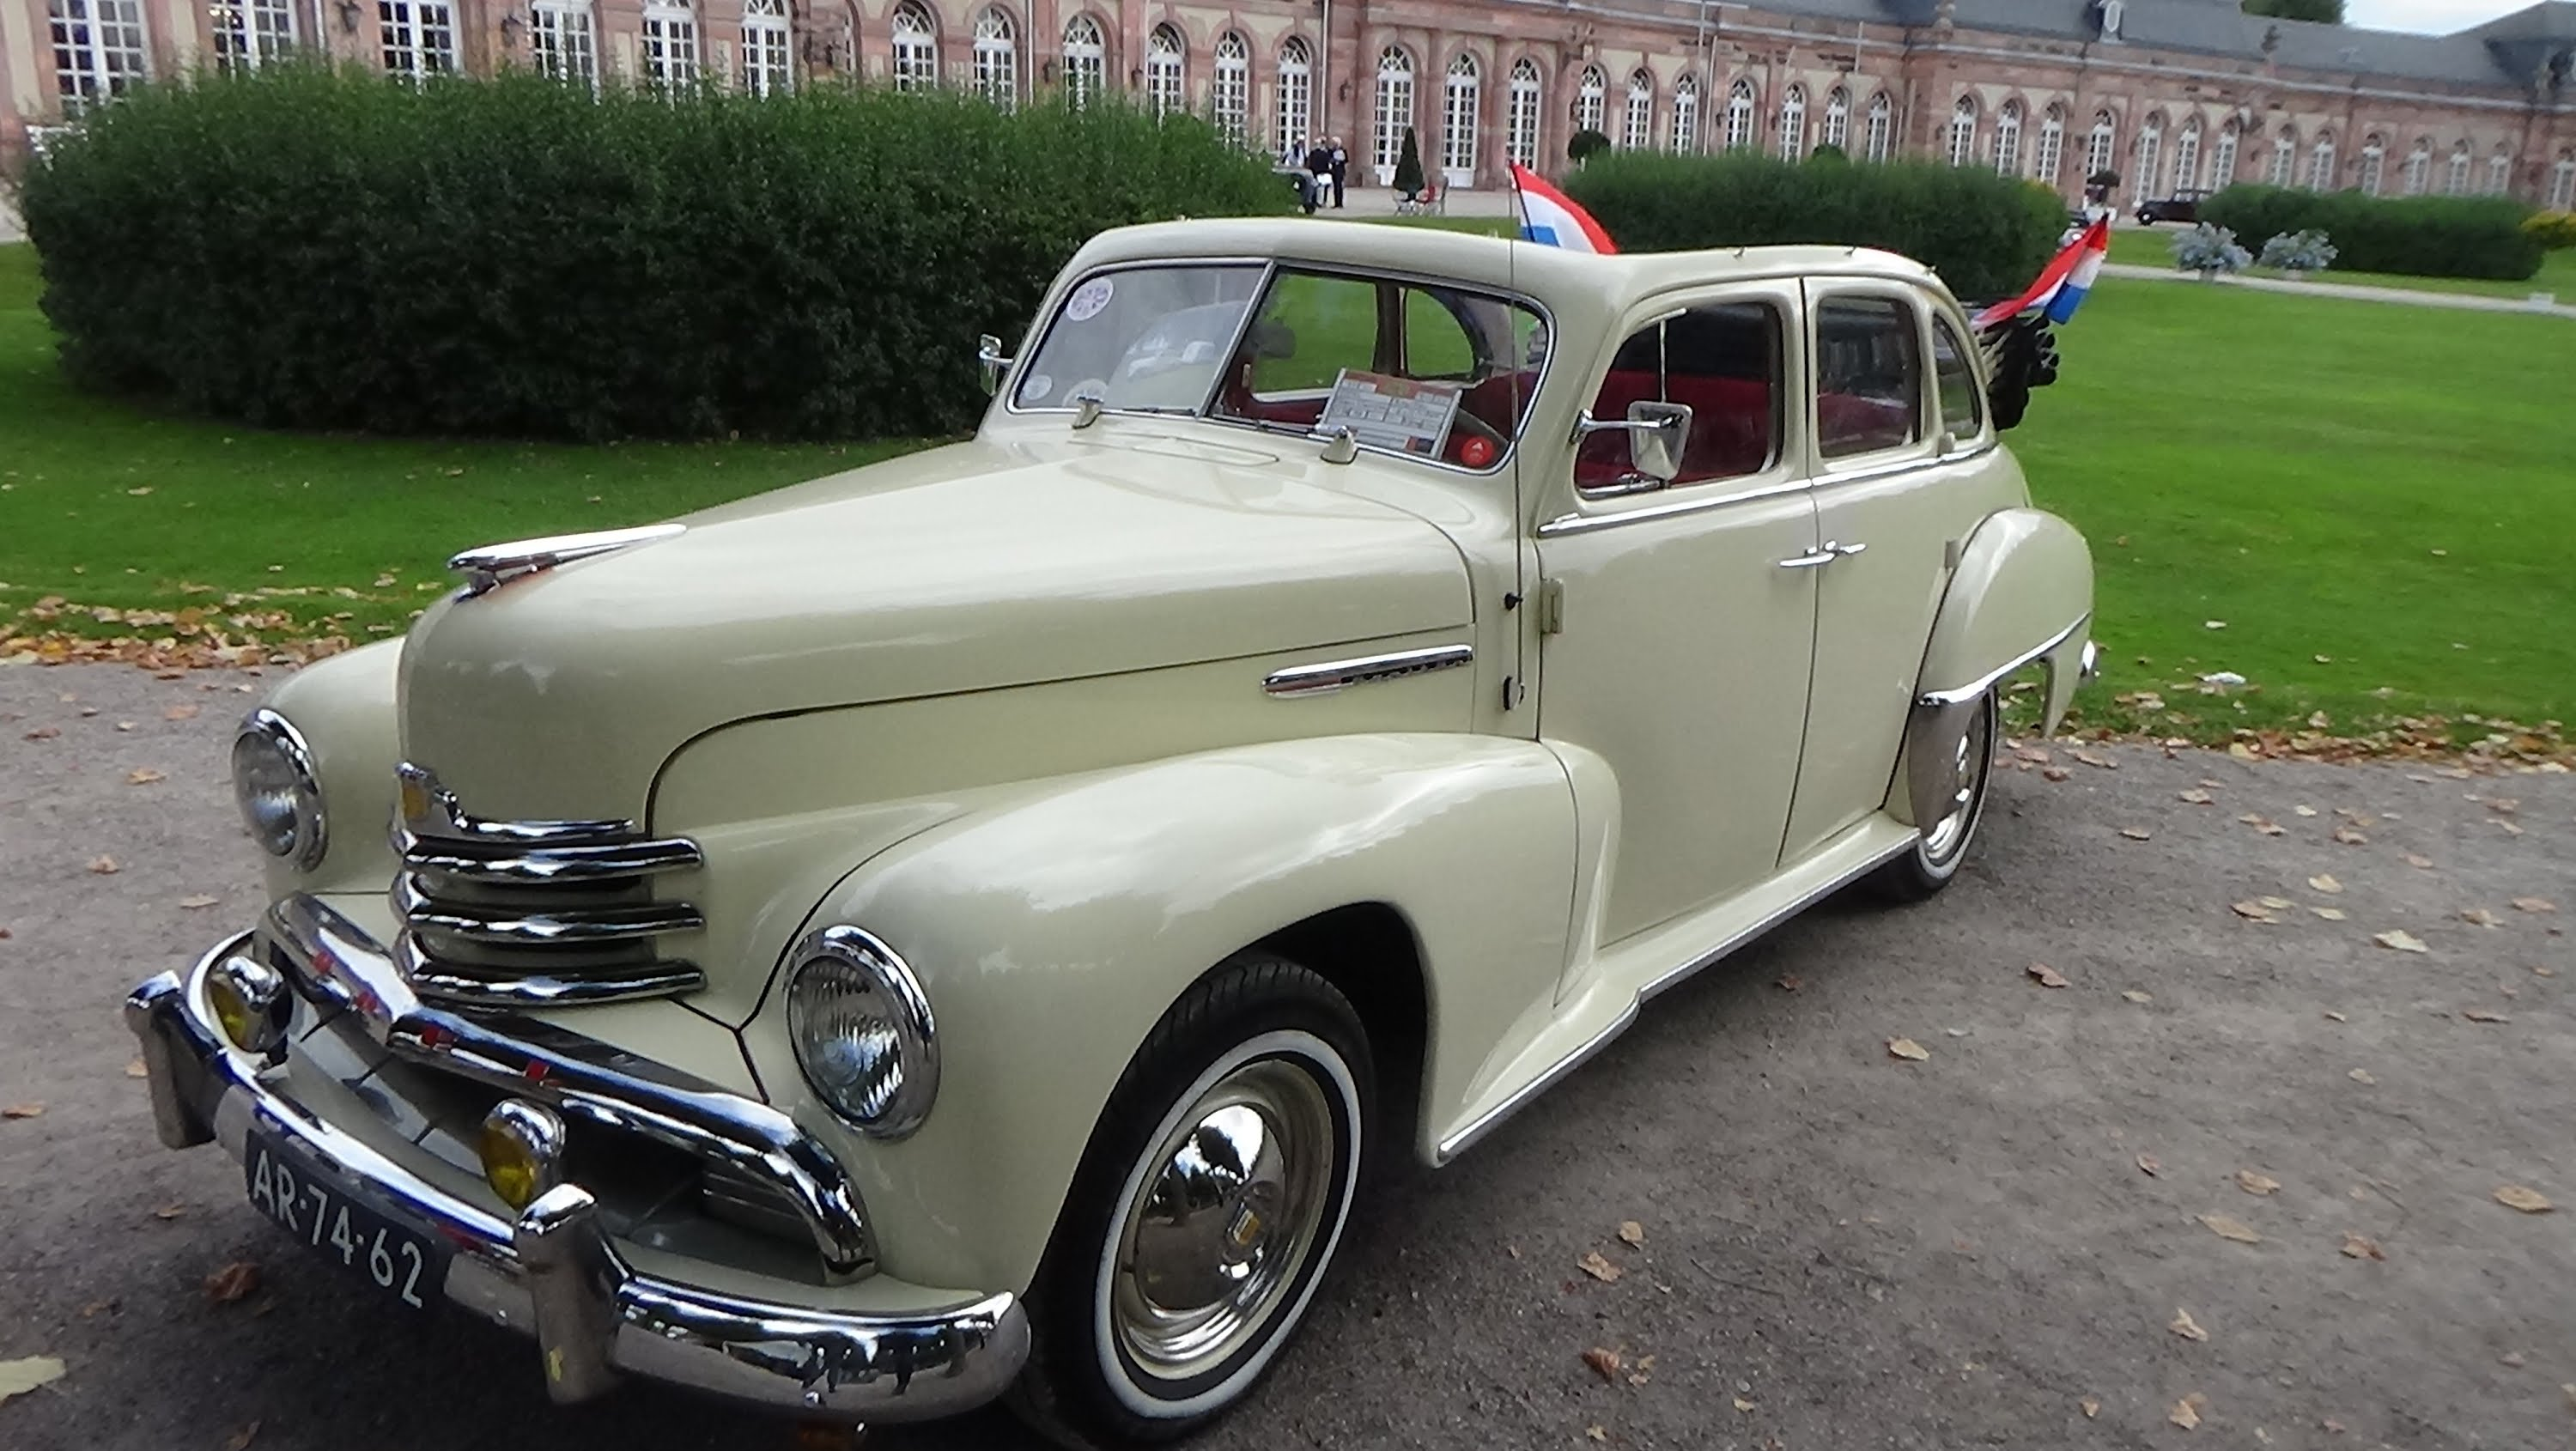 Opel Kapitan I Restyling 1951 - 1953 Sedan #7